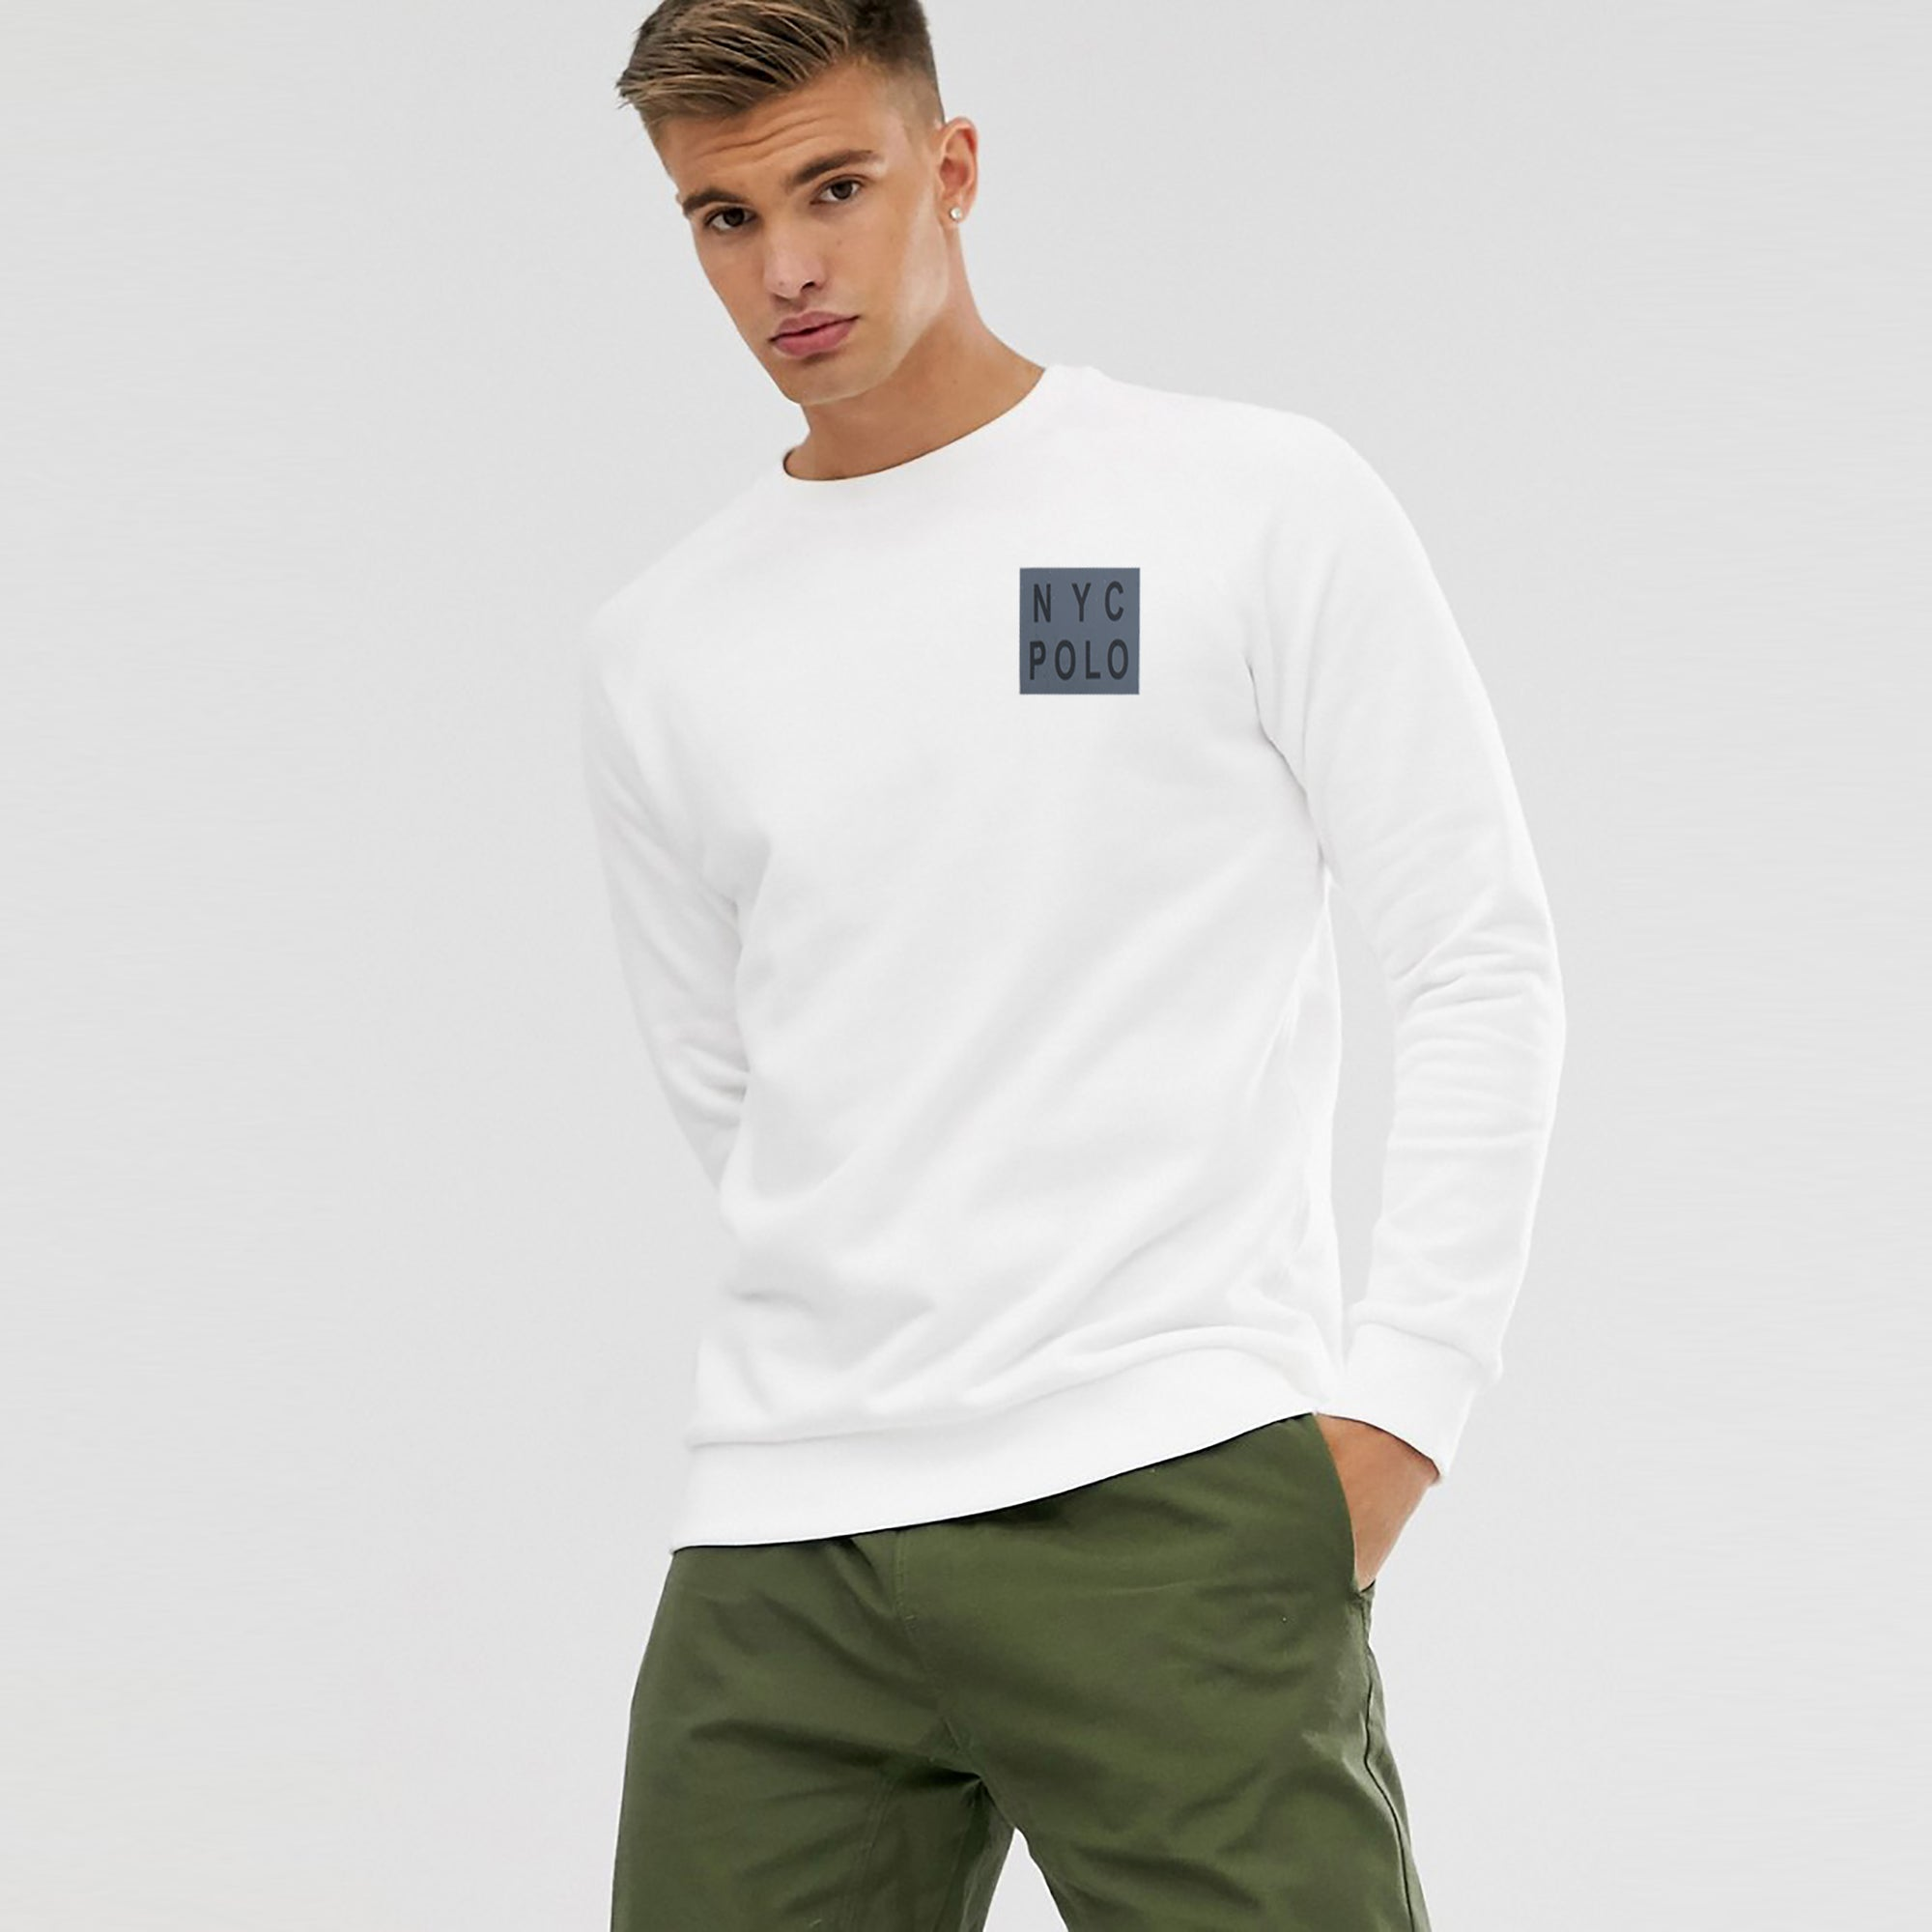 Nyc Polo Crew Neck Fleece Embroidered Sweatshirt For Men-White-SP1148